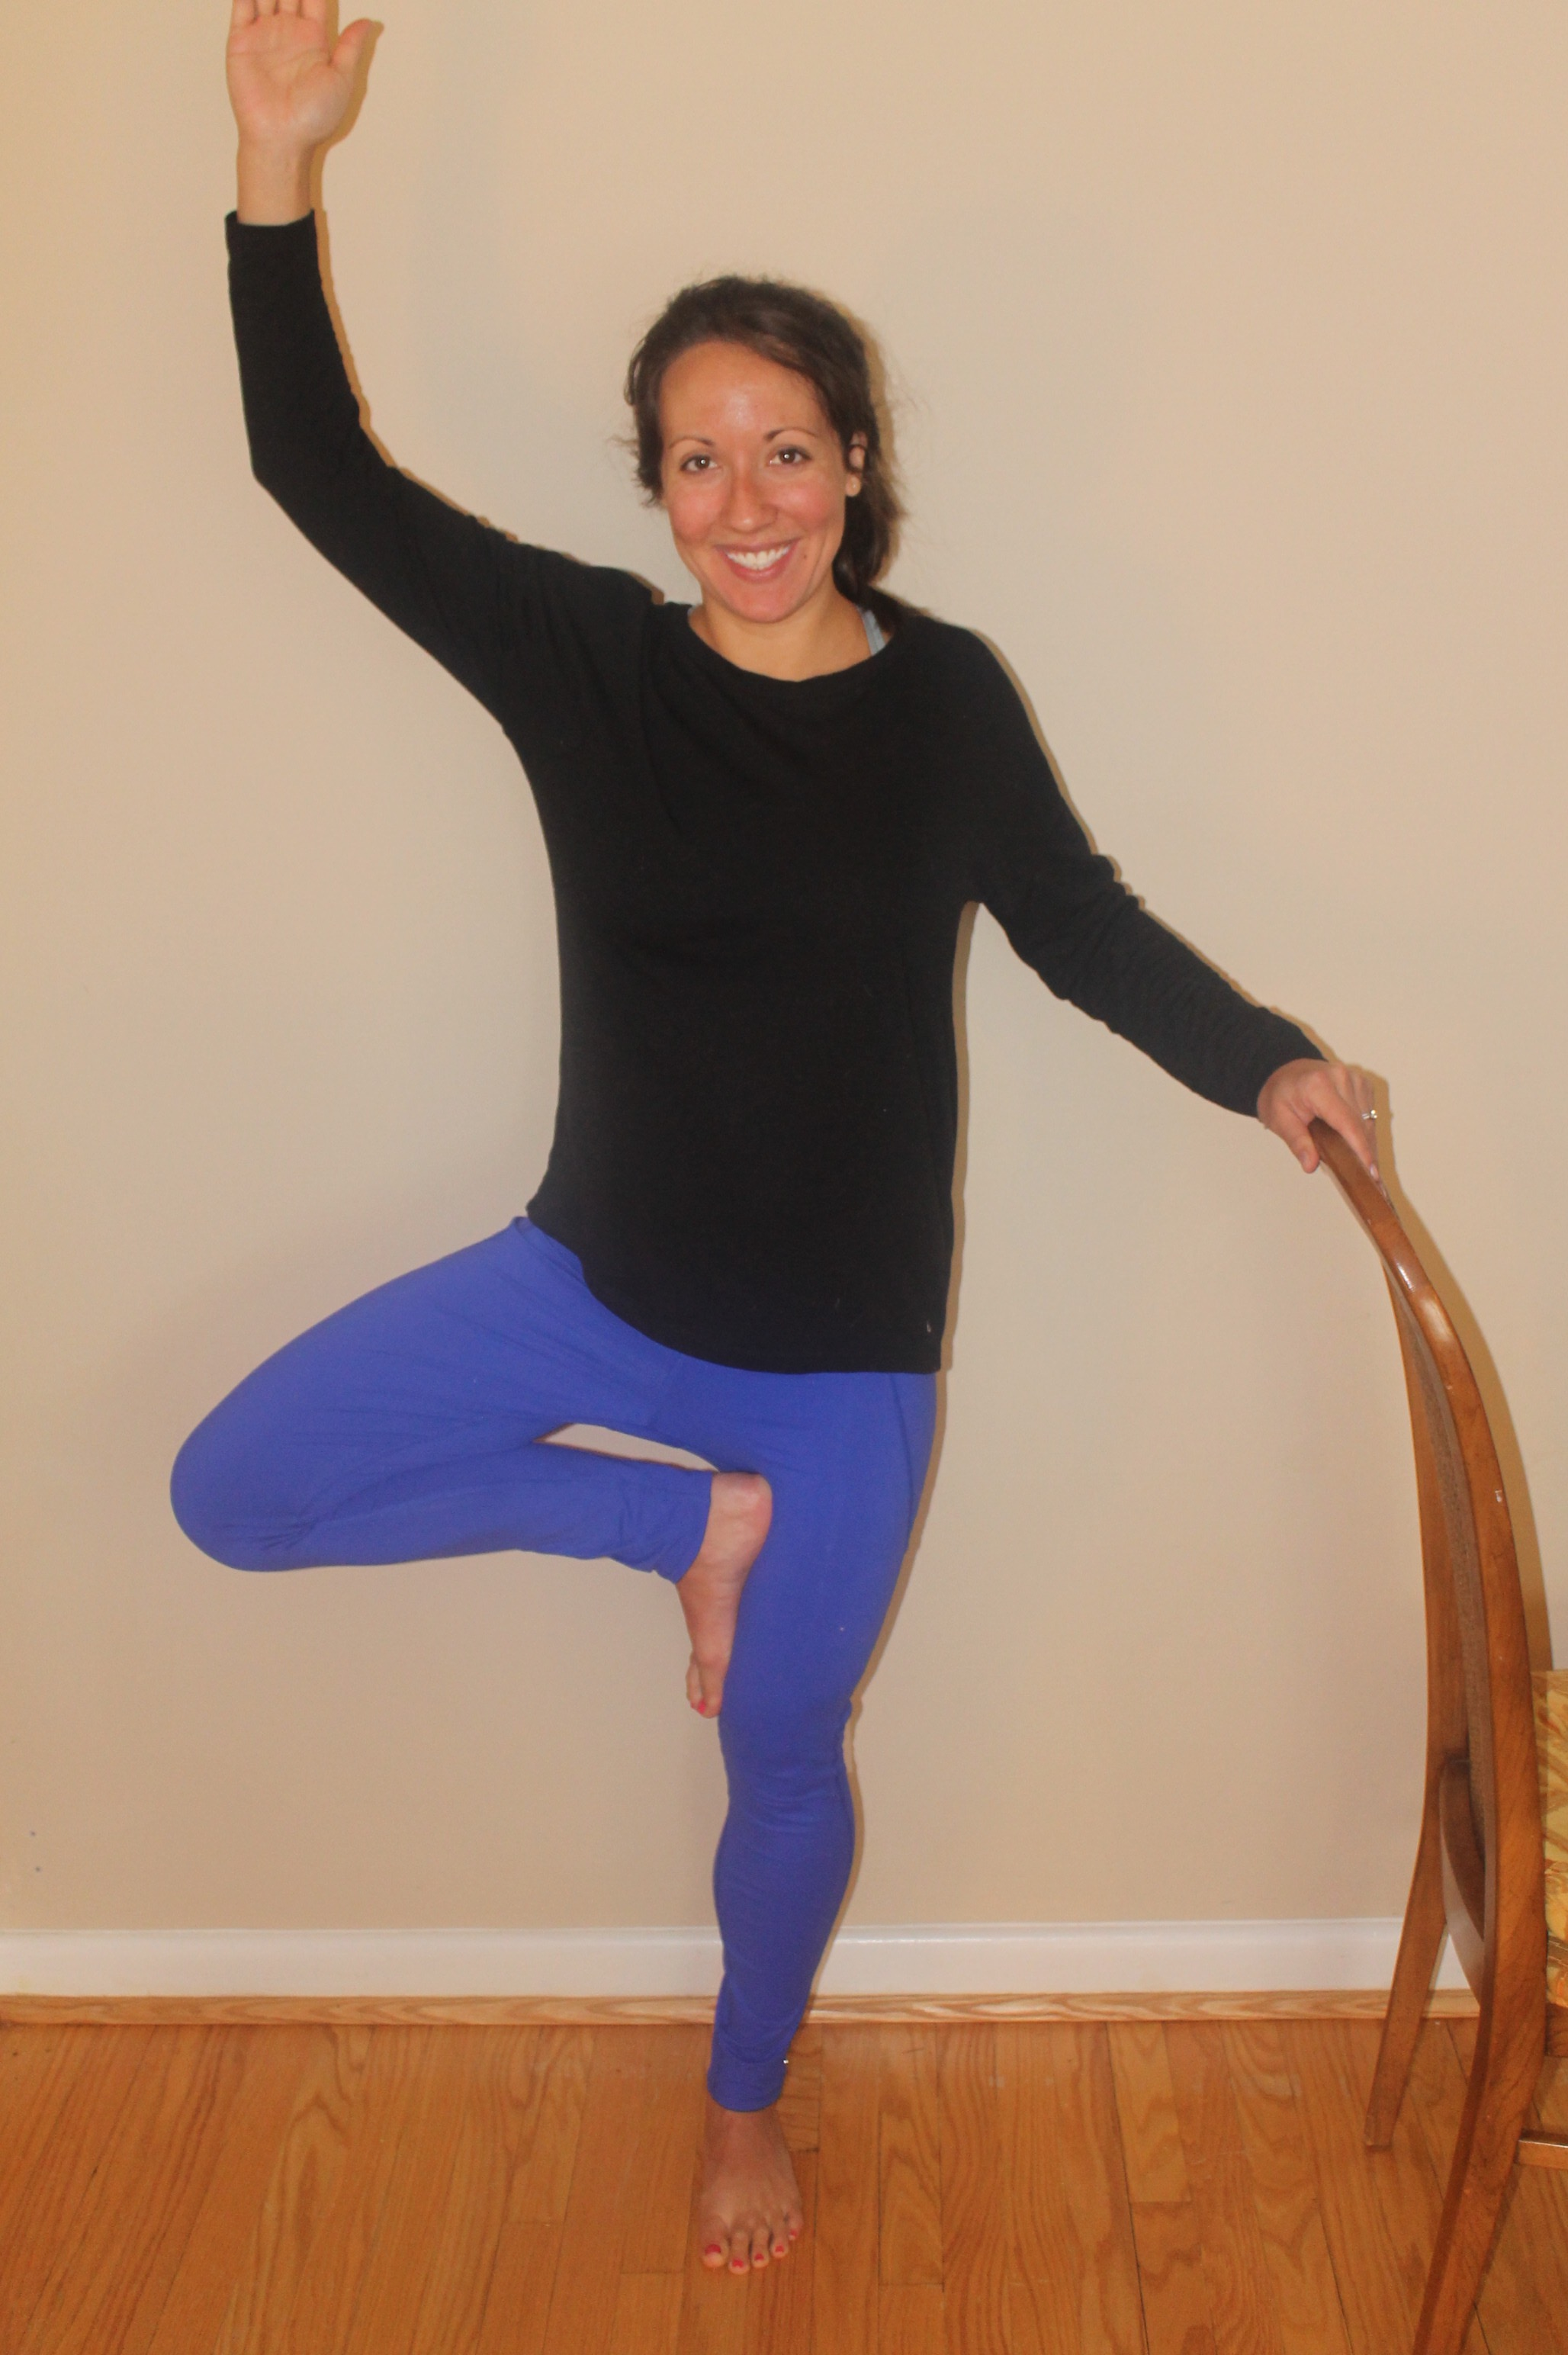 figure 5: Dr. Heppe demonstrating a more difficult tree pose.